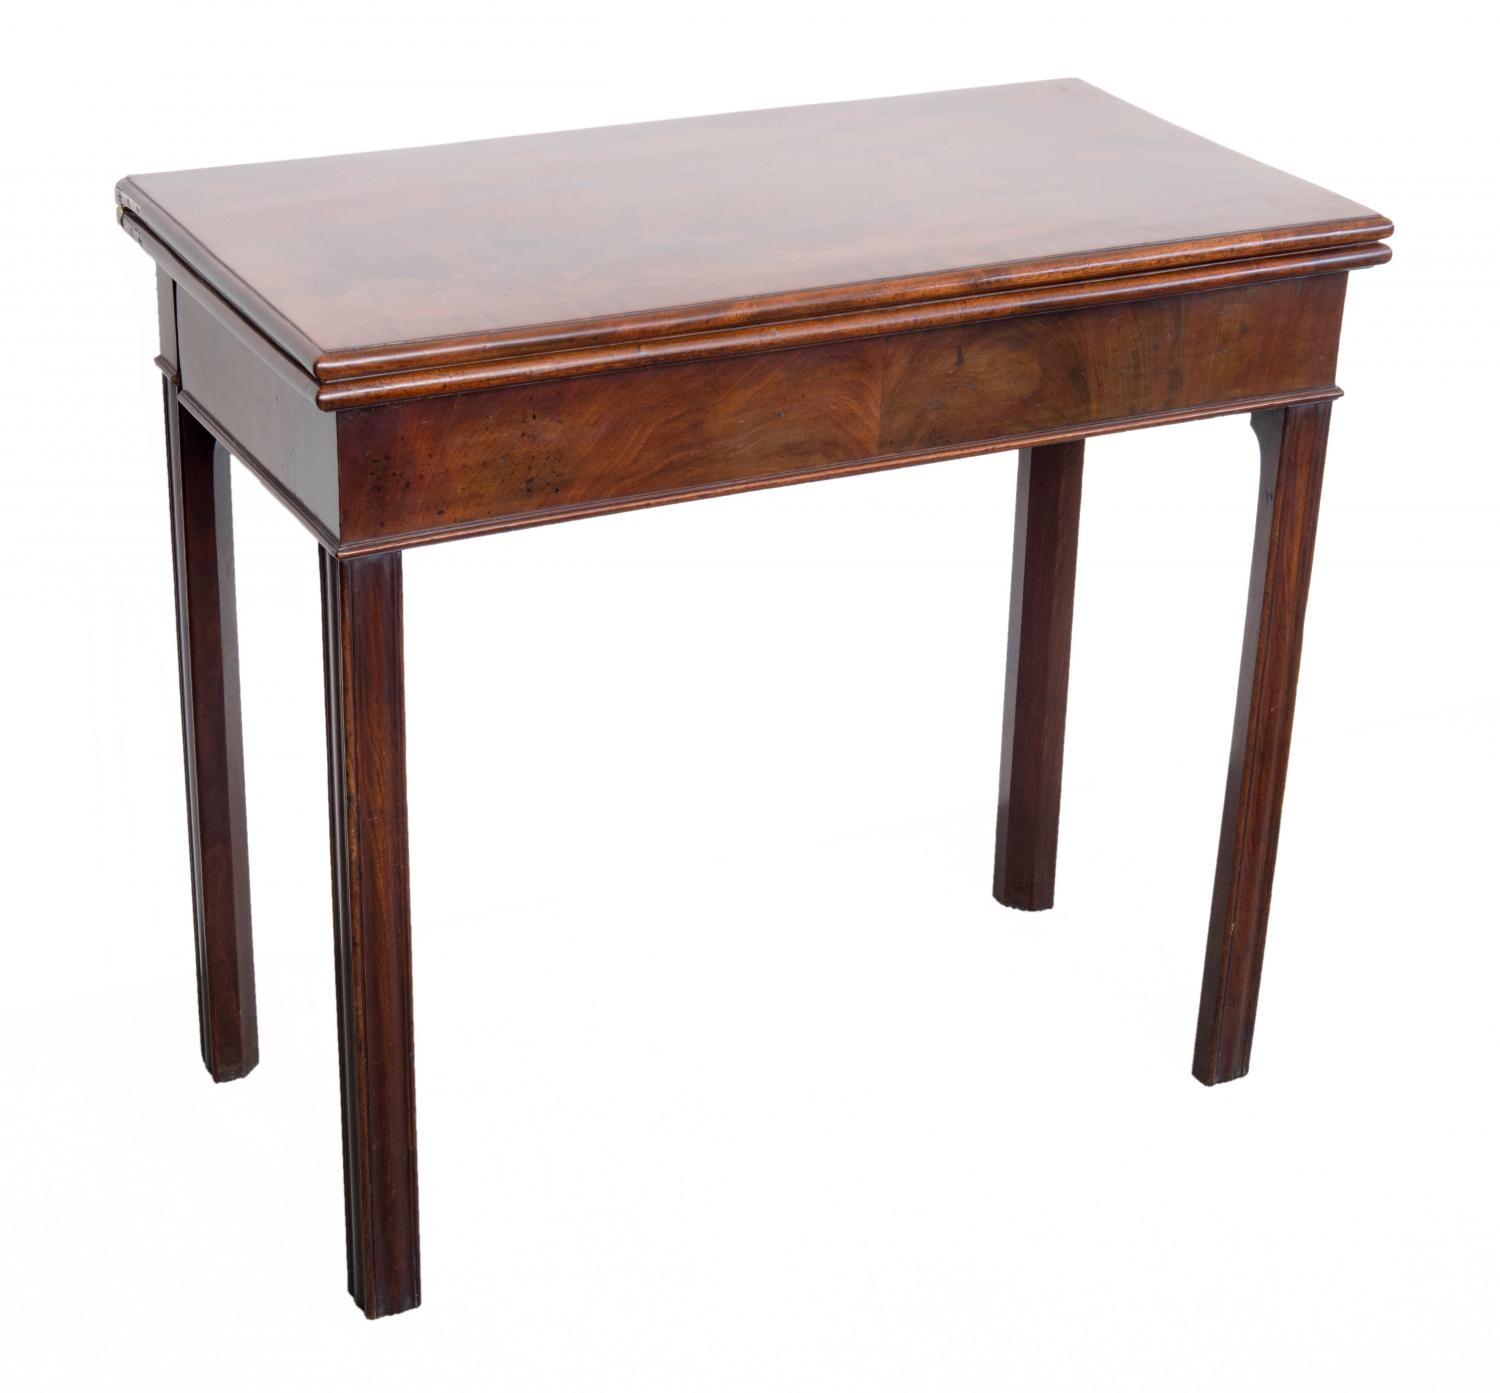 A Chippendale period mahogany card table.